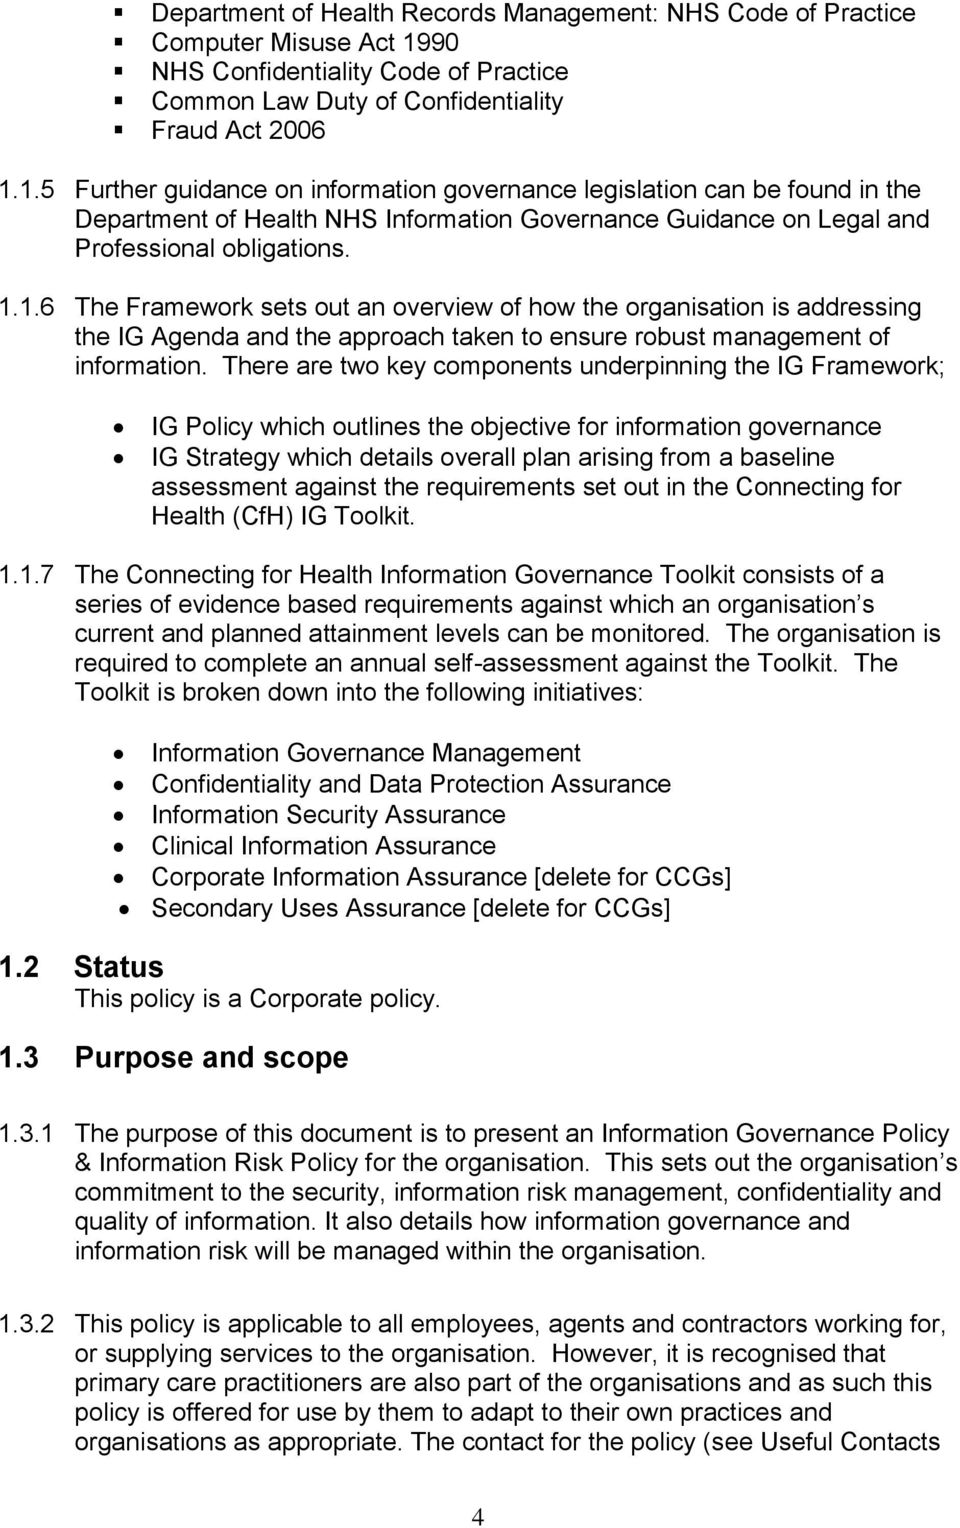 1.5 Further guidance on information governance legislation can be found in the Department of Health NHS Information Governance Guidance on Legal and Professional obligations. 1.1.6 The Framework sets out an overview of how the organisation is addressing the IG Agenda and the approach taken to ensure robust management of information.